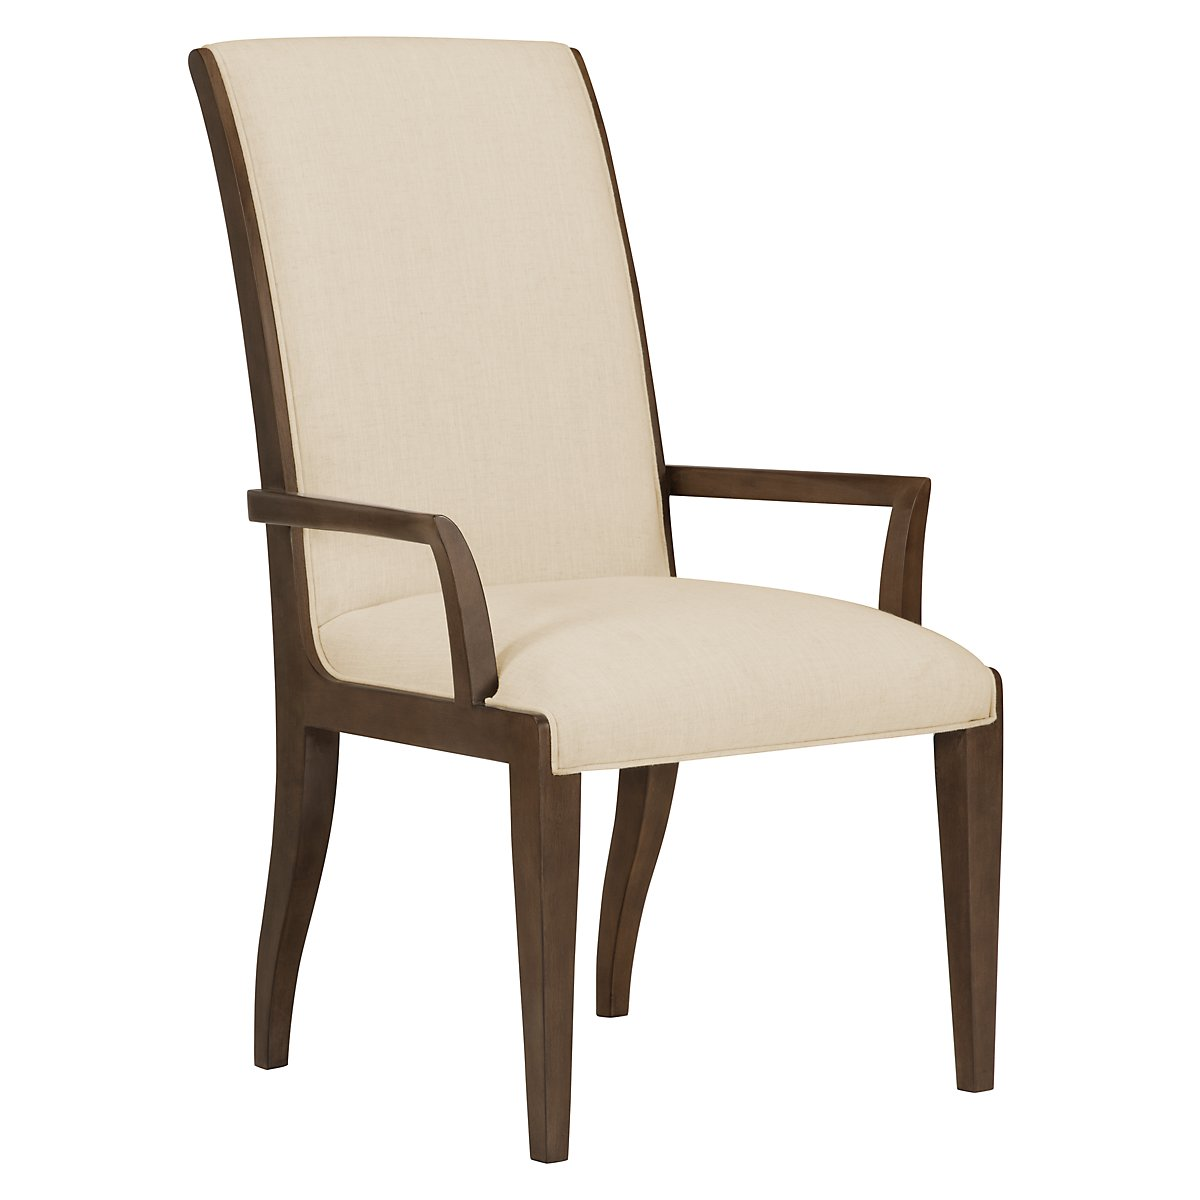 Preston Mid Tone Wood Upholstered Arm Chair